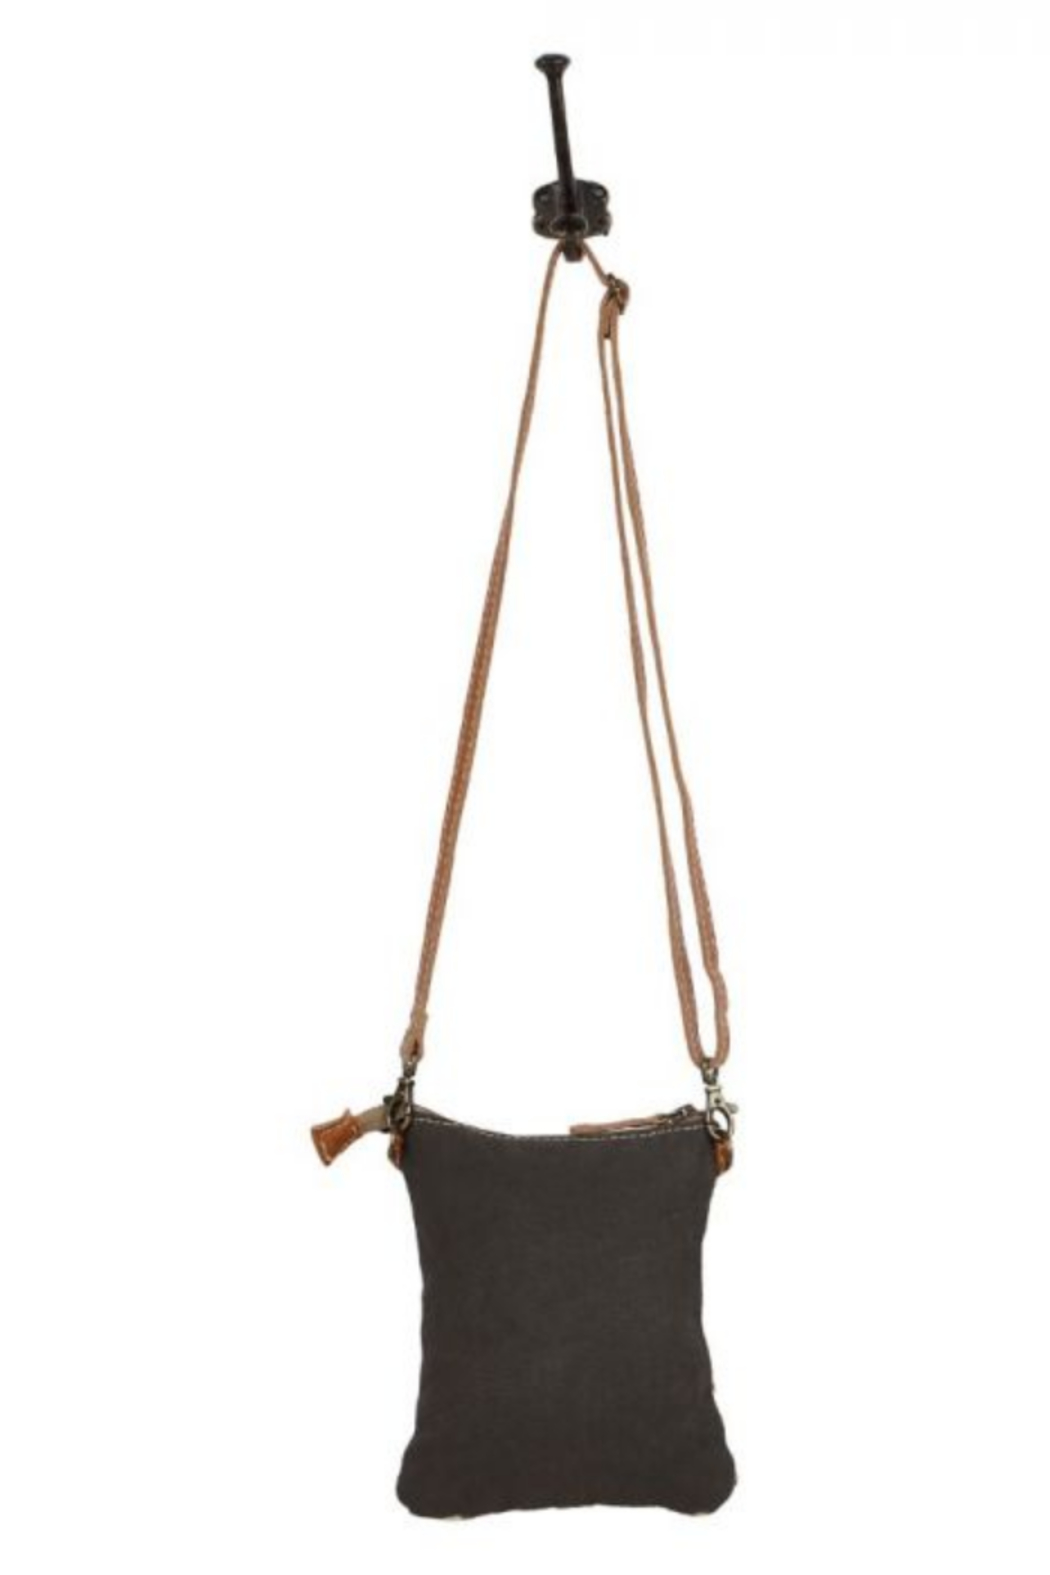 Myra Bag Myra Vuierra Rivet Small Crossbody Bag 1563 - Front Full Image